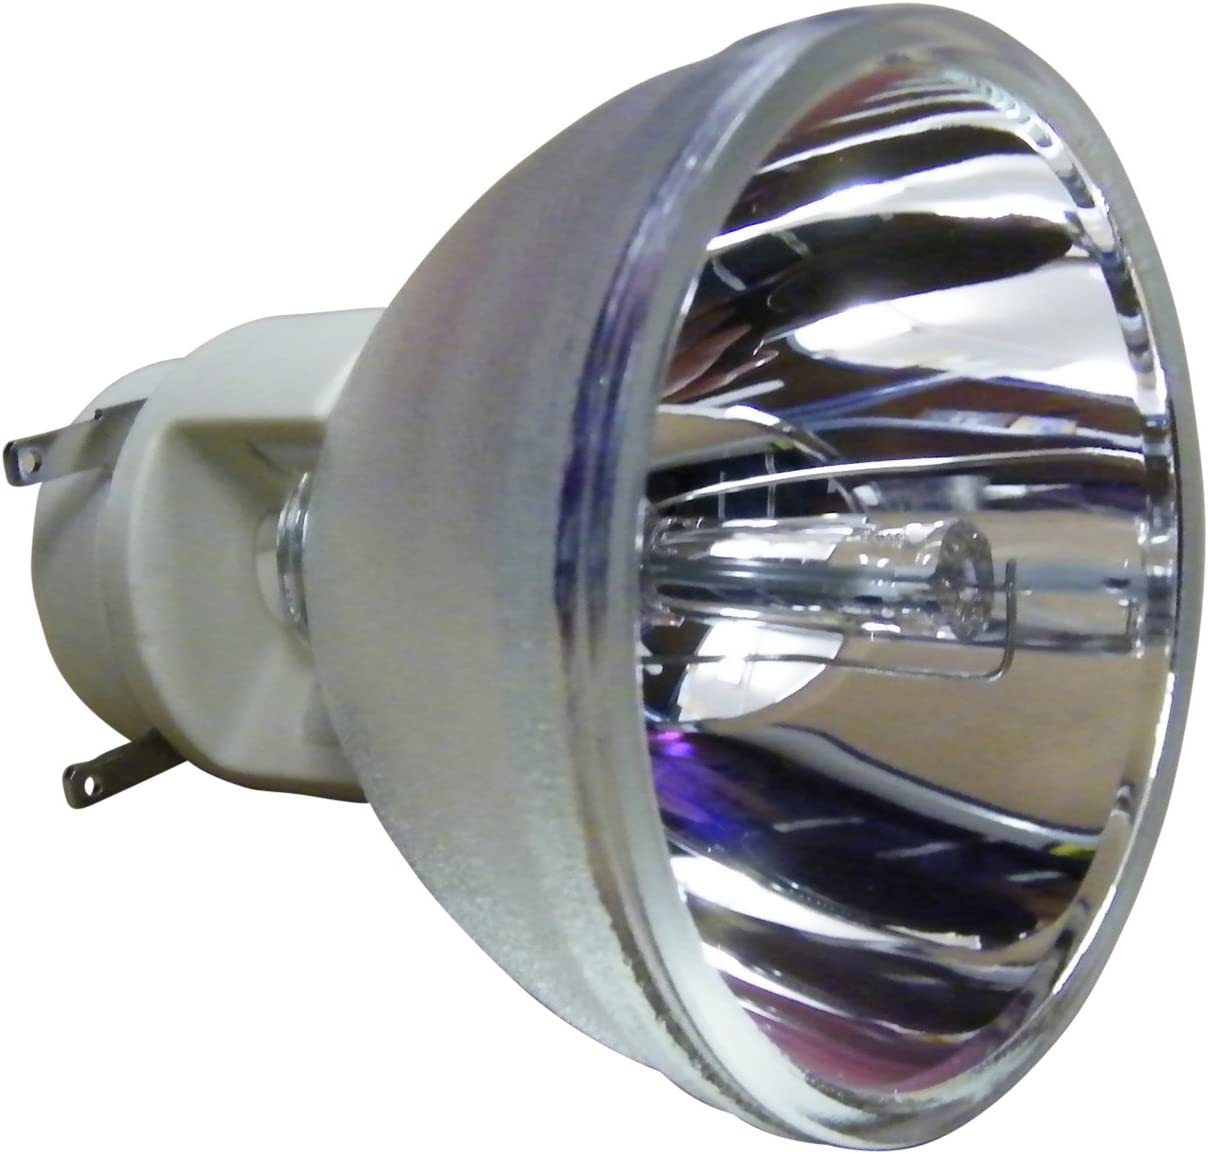 OSRAM P-VIP 240 / 0.8 E20.9N Projector lamp Without housing for Various projectors